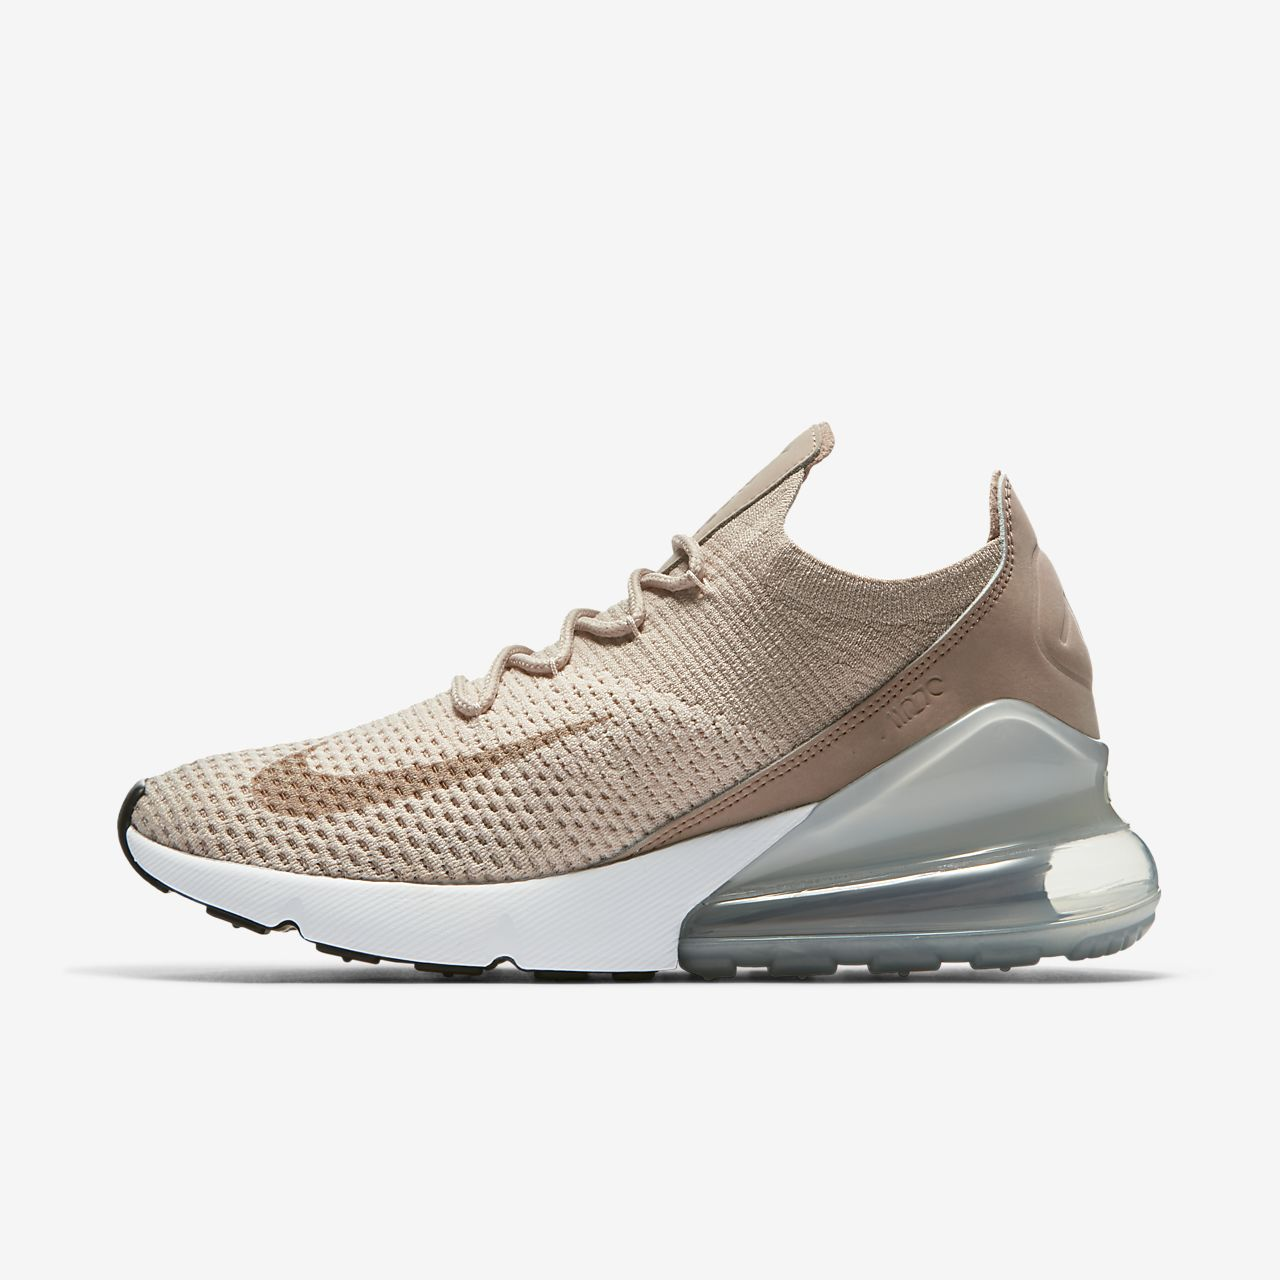 Nike Air Max 270 Flyknit Chaussure Officiel Nike Running